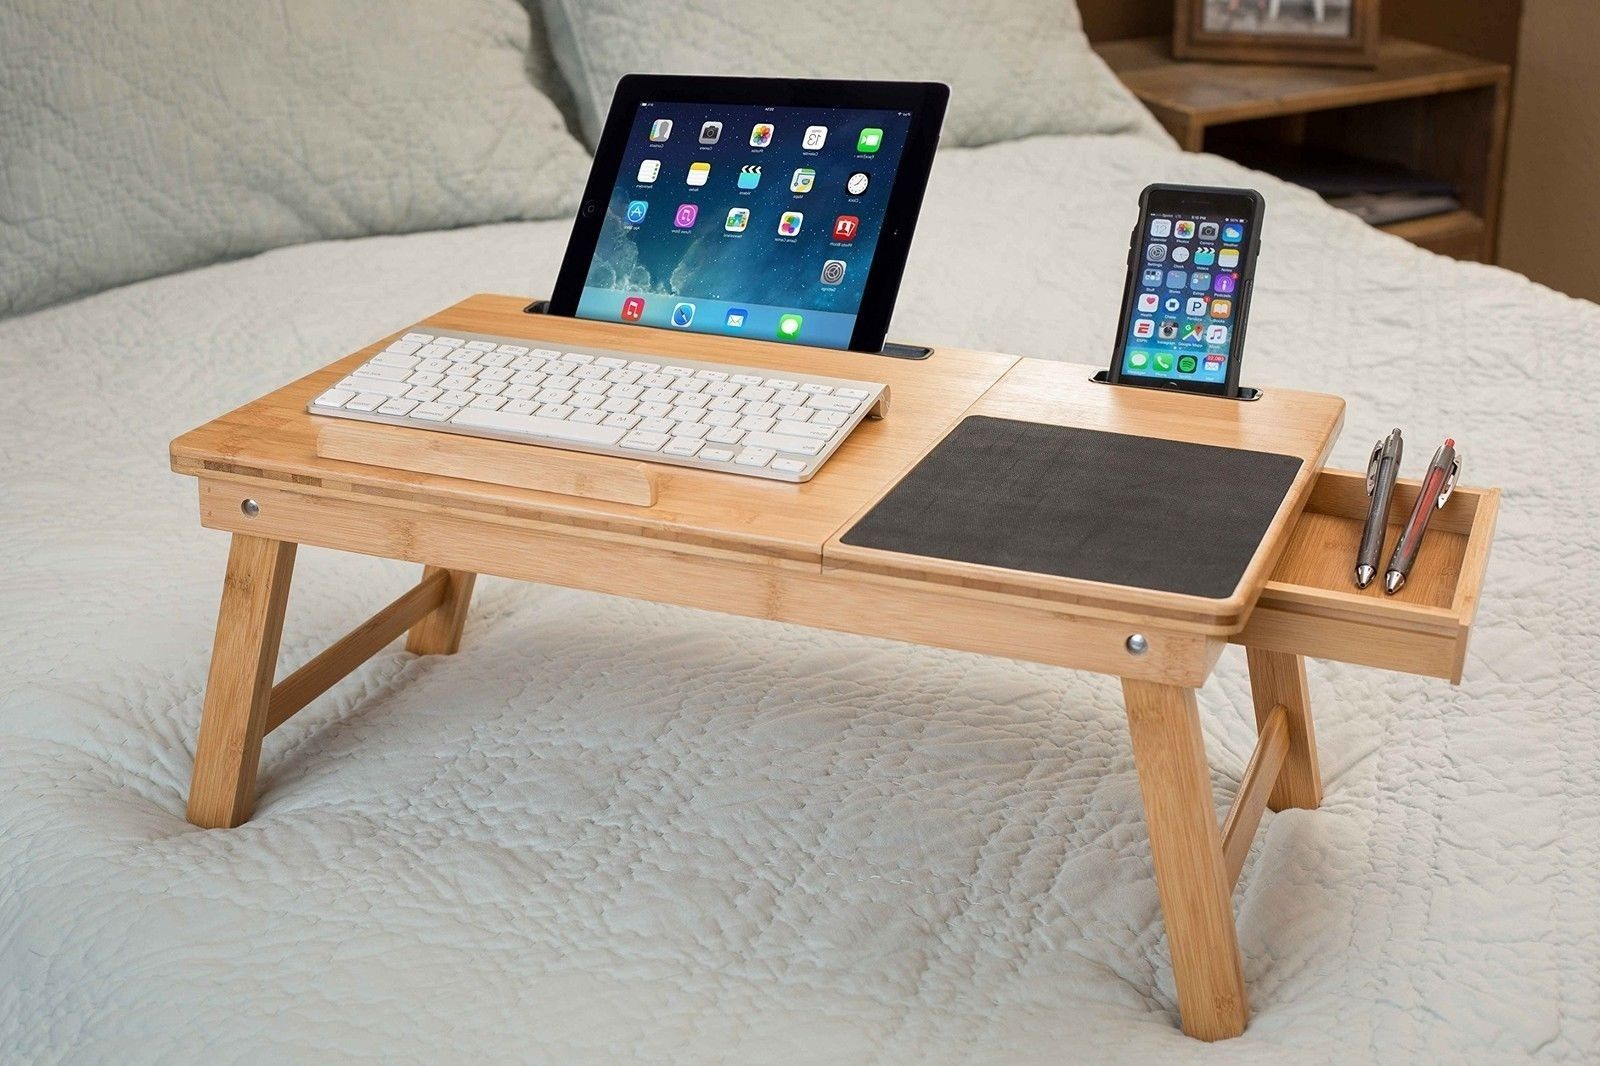 Color Natural This Home Laptop Bed Tray Is A Great Addition To Any Sofa Or Chair The Allows You Eat Work On